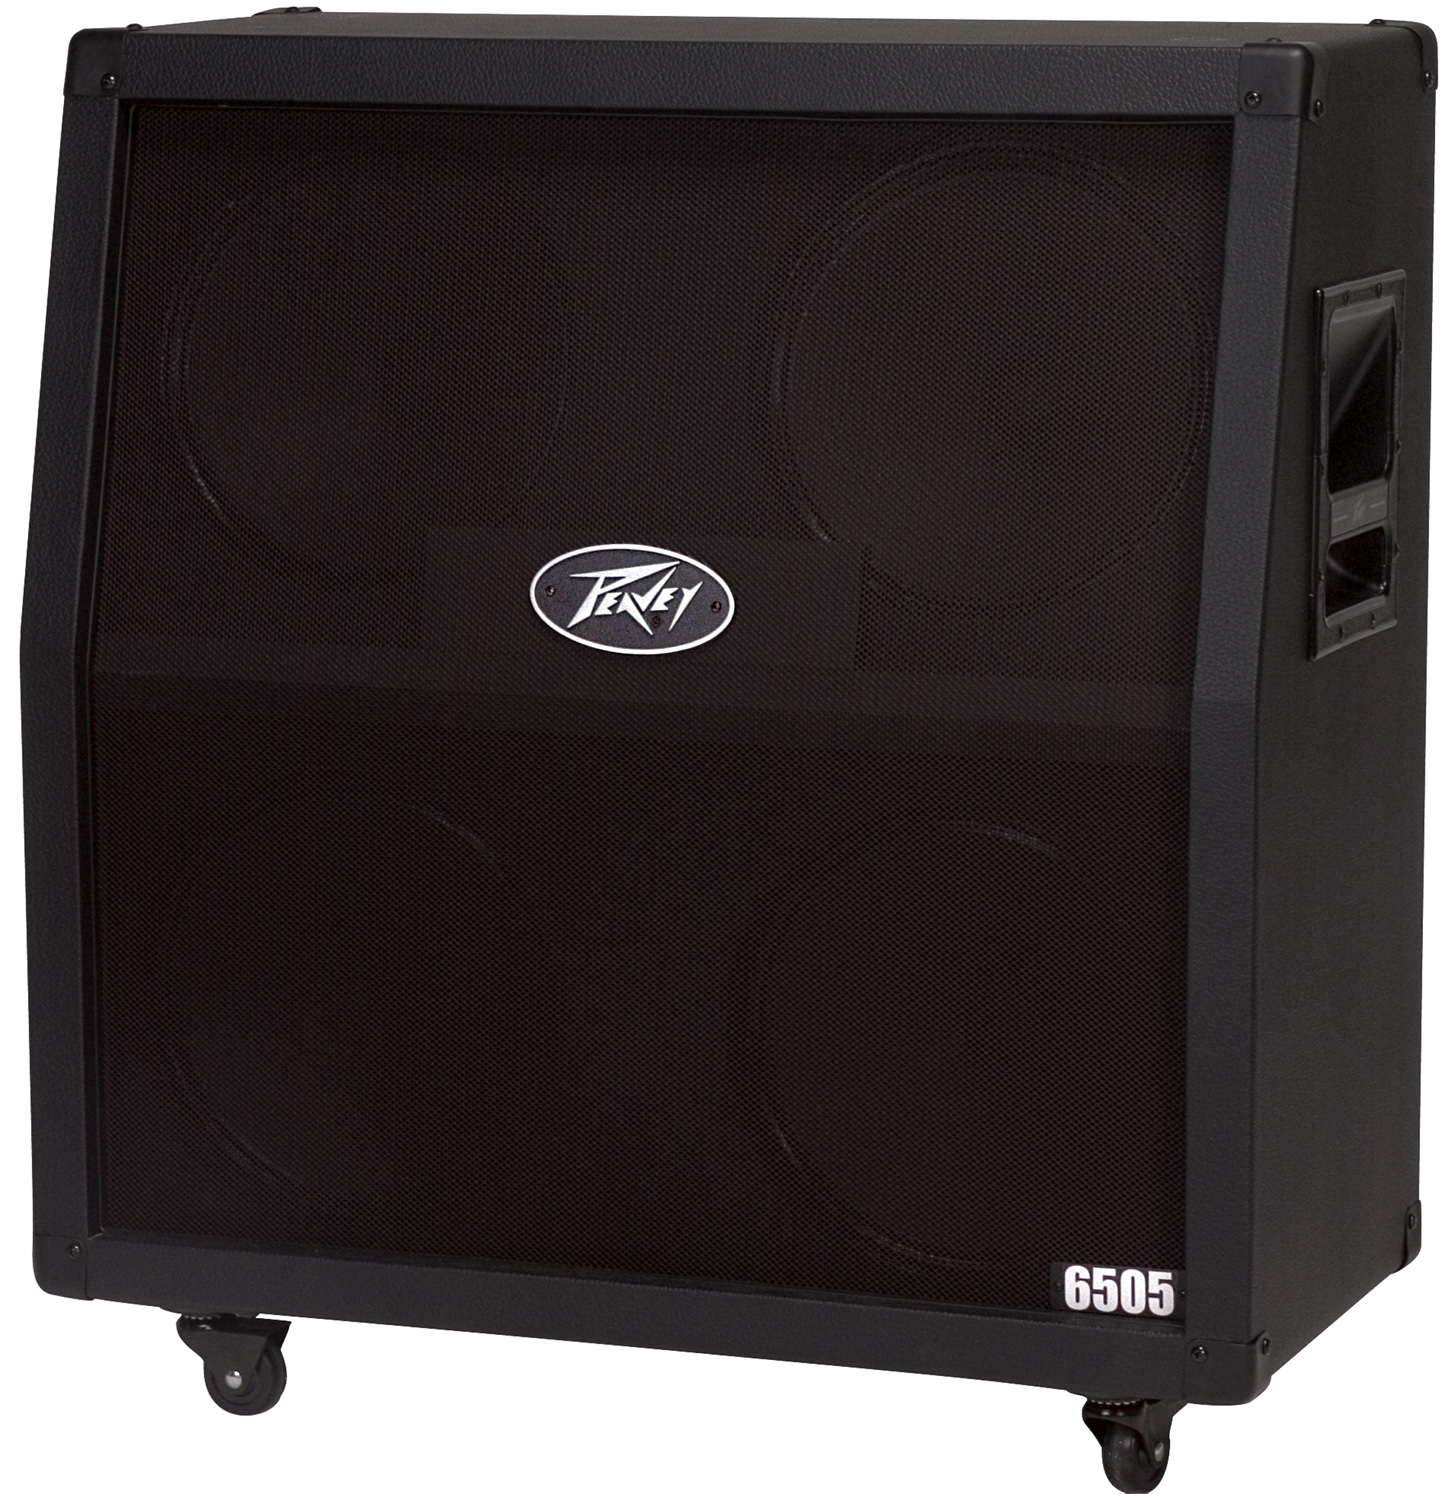 peavey 6505 412 slant cabinet 6505 plus amp head guitar package w cables ebay. Black Bedroom Furniture Sets. Home Design Ideas